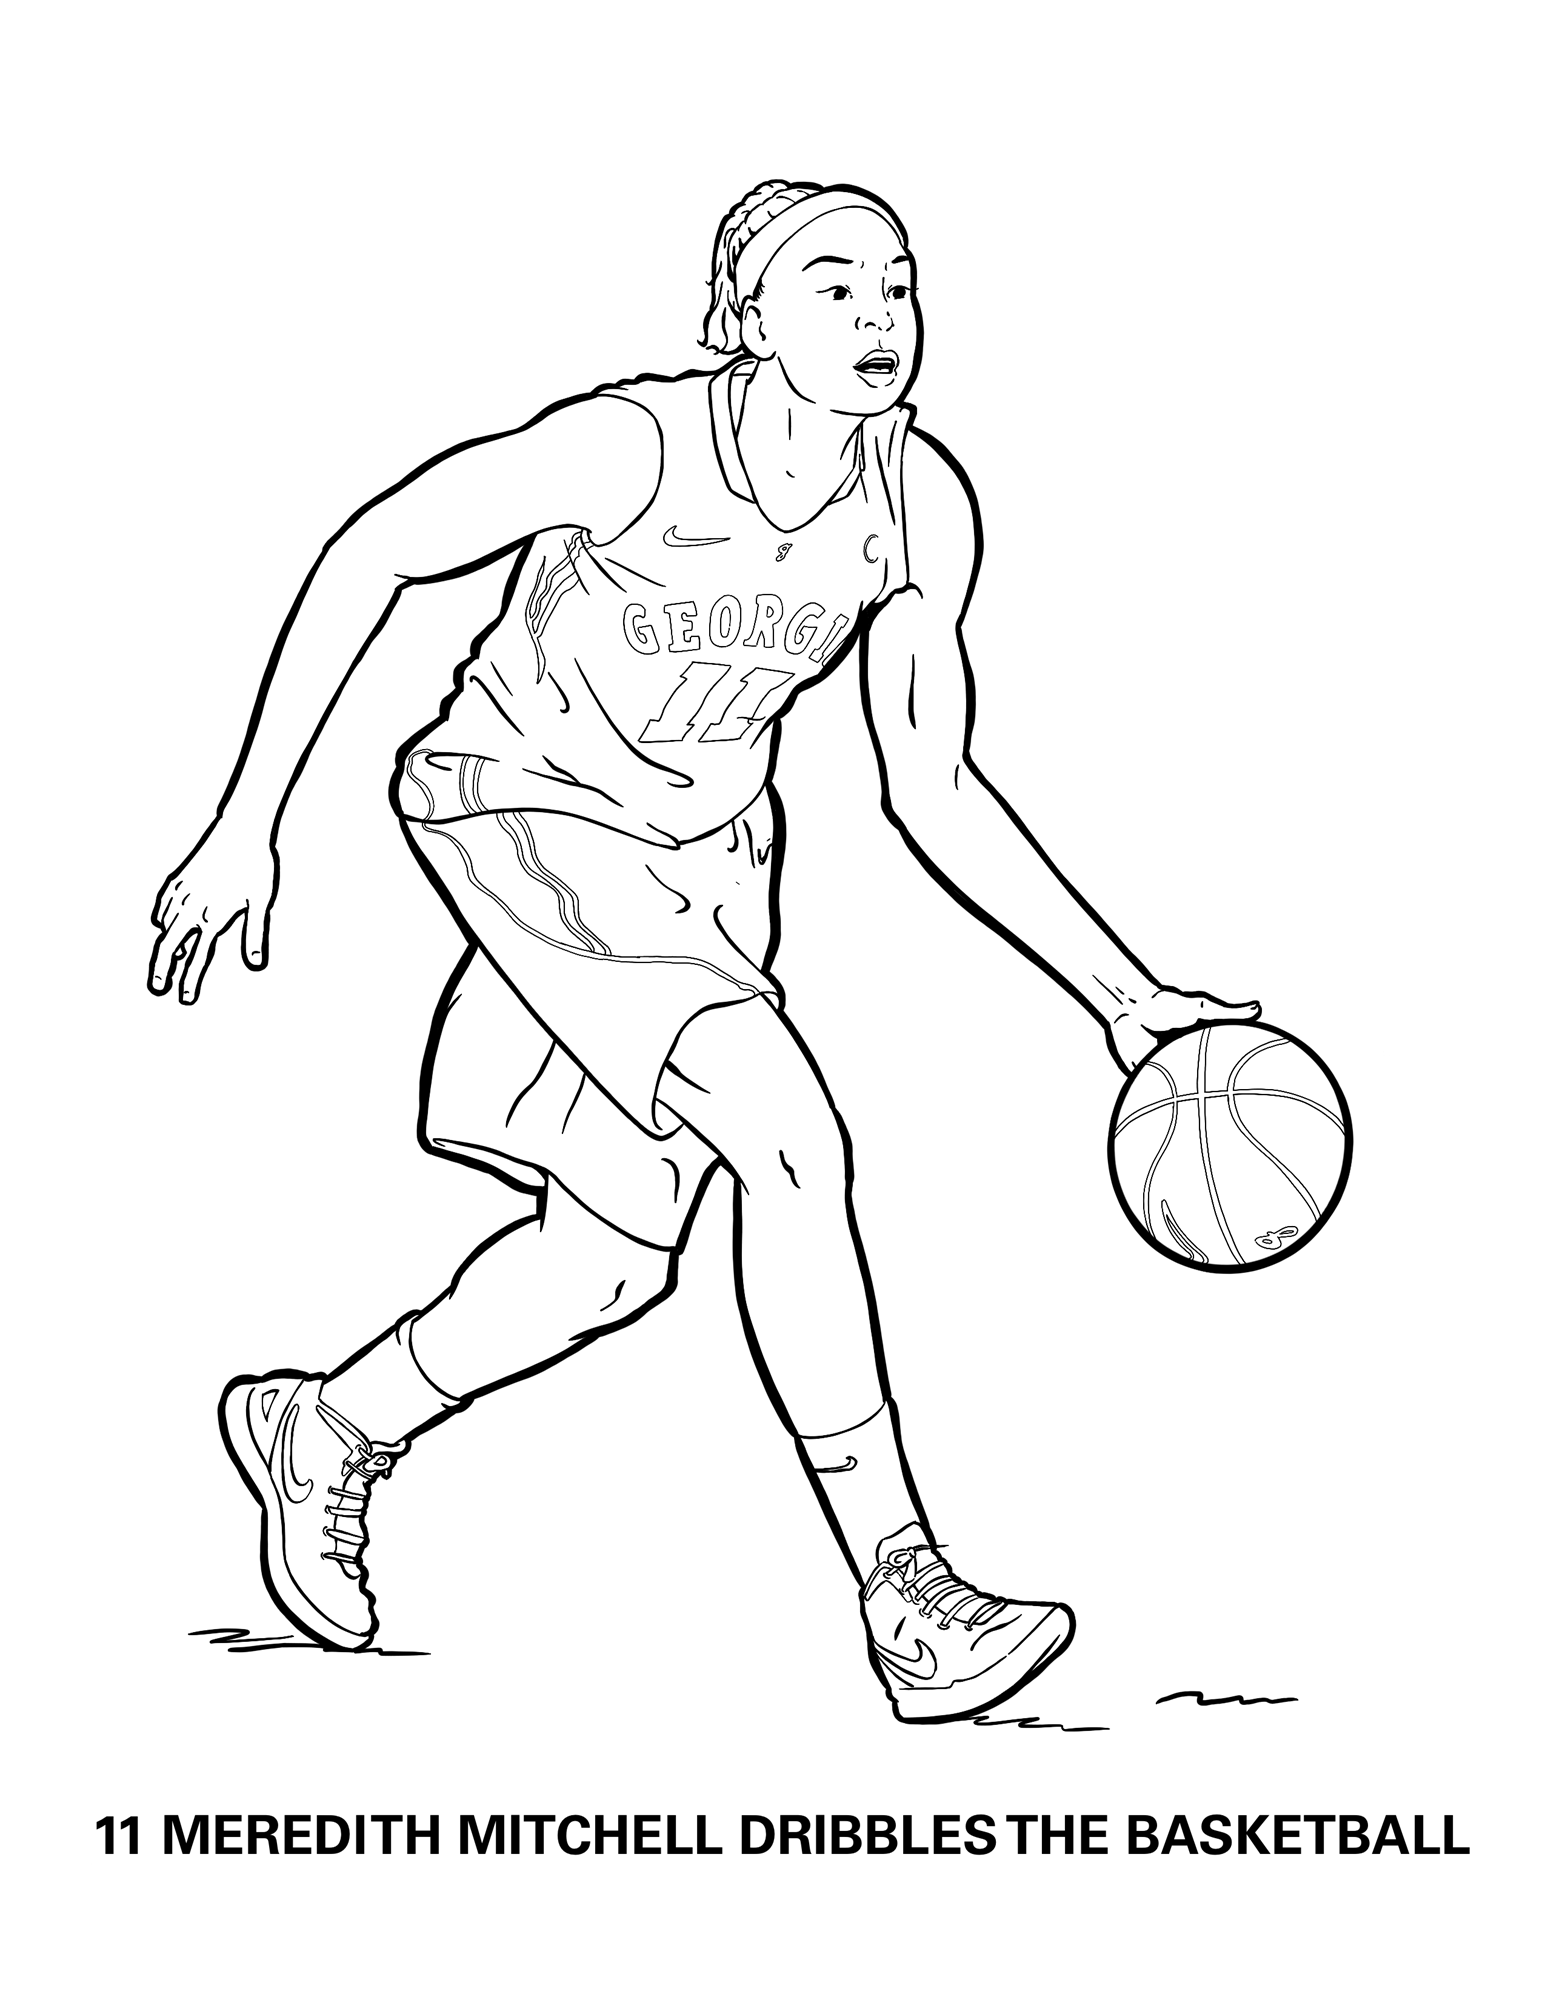 College Basketball Logo - Coloring Pages For Kids And For Adults ... | 2000x1545